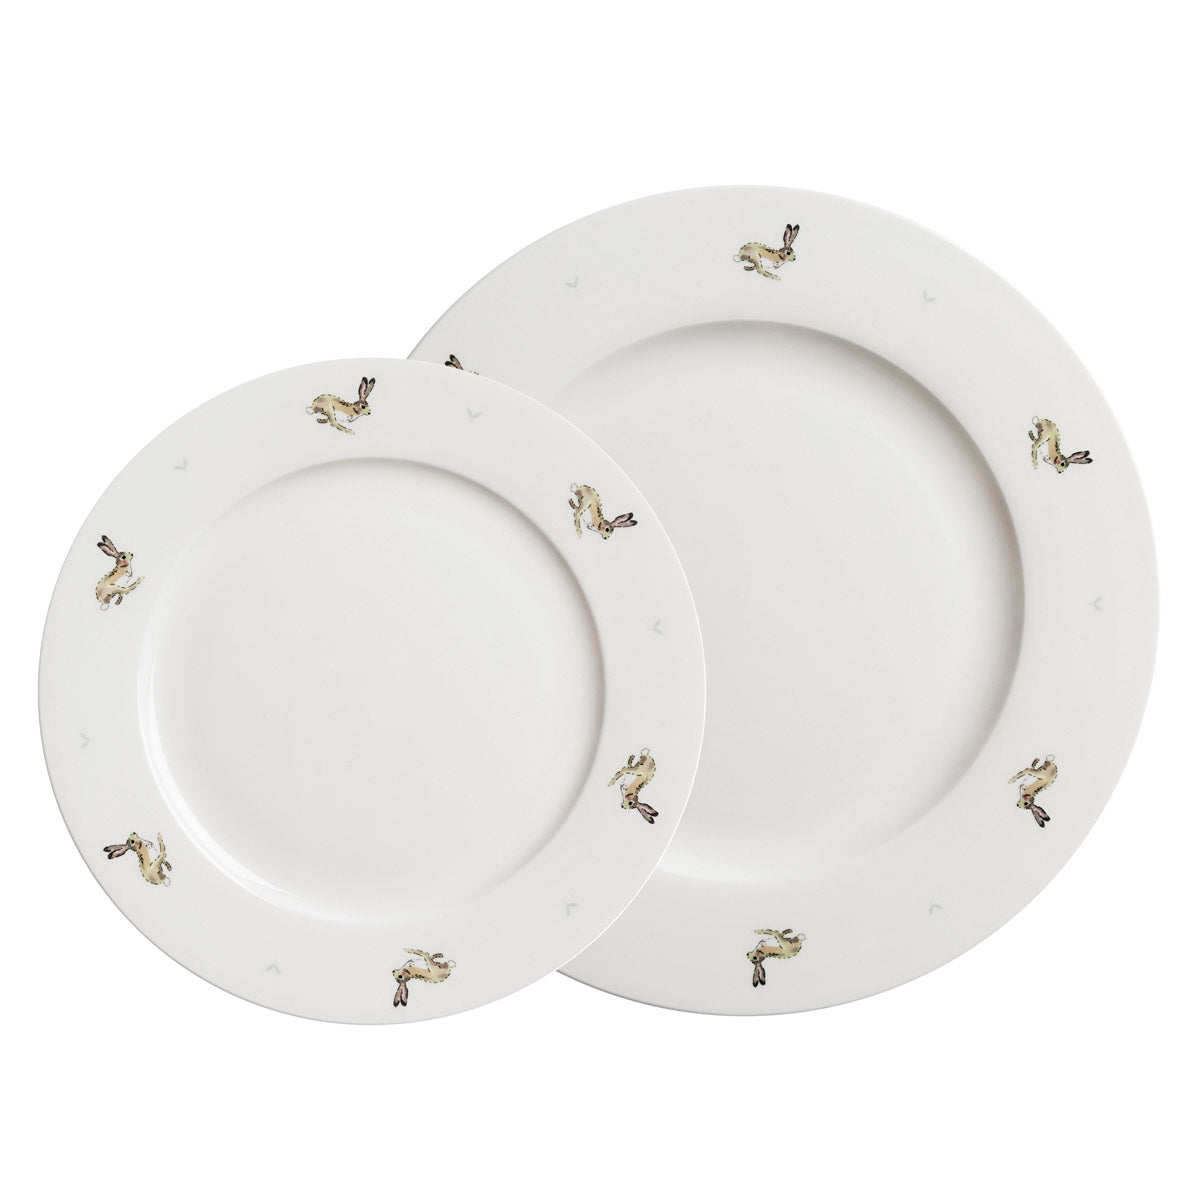 Hare Plates